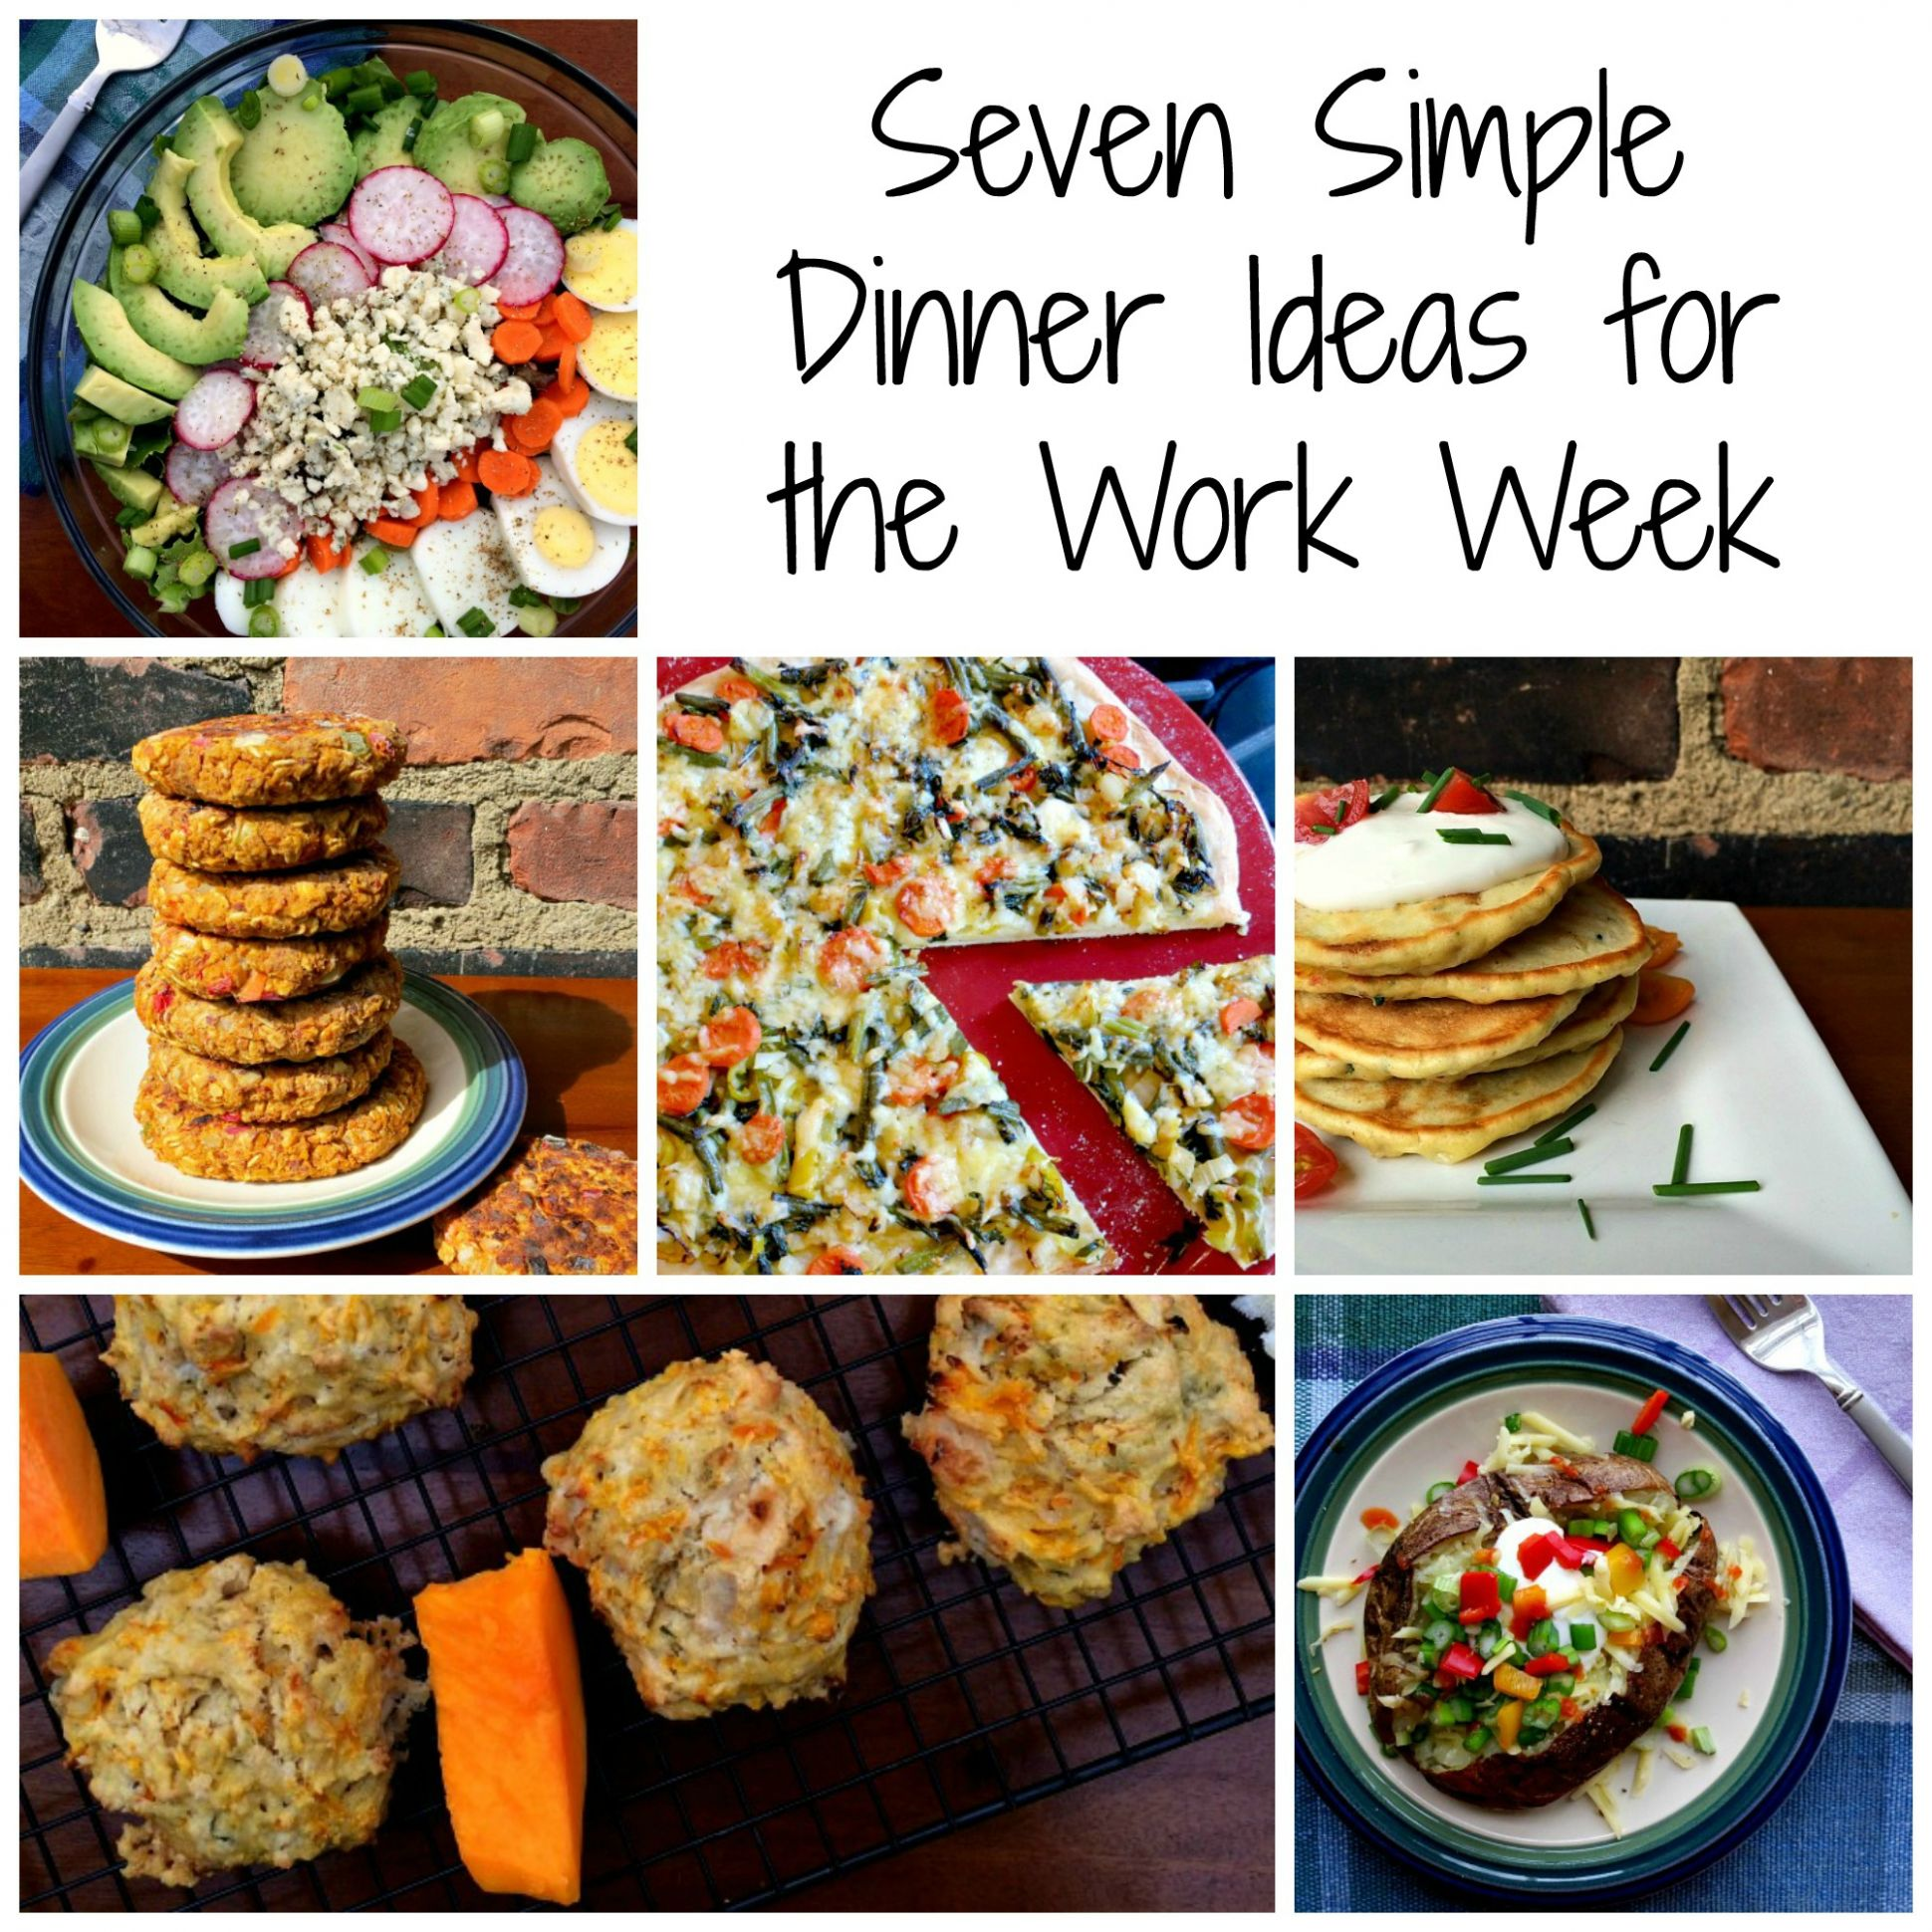 Seven Simple Dinner Ideas for the Work Week - Clean Eats, Fast Feets - Recipes Dinner This Week